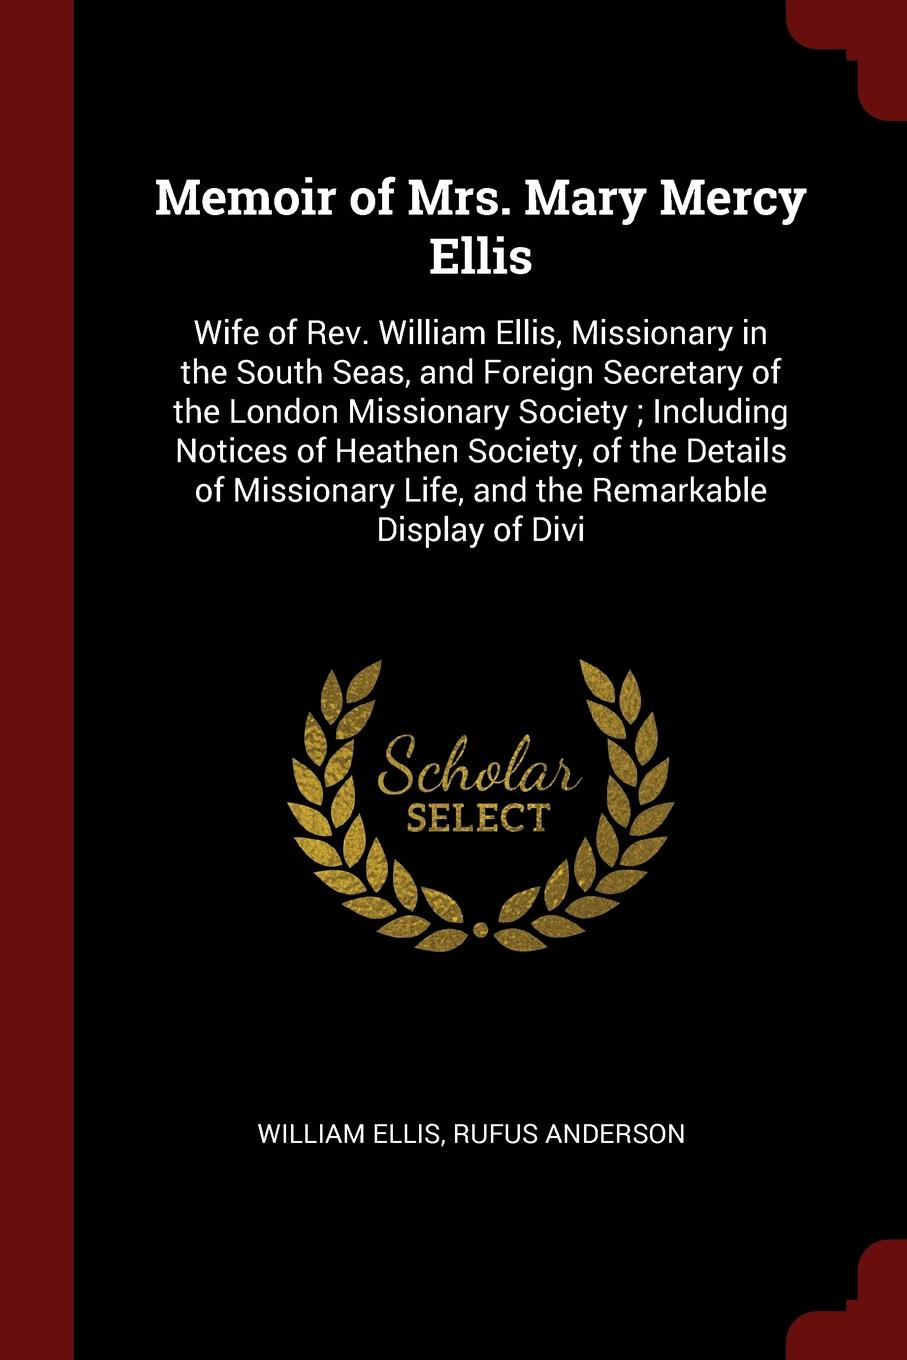 Memoir of Mrs. Mary Mercy Ellis. Wife of Rev. William Ellis, Missionary in the South Seas, and Foreign Secretary of the London Missionary Society ; Including Notices of Heathen Society, of the Details of Missionary Life, and the Remarkable Display...